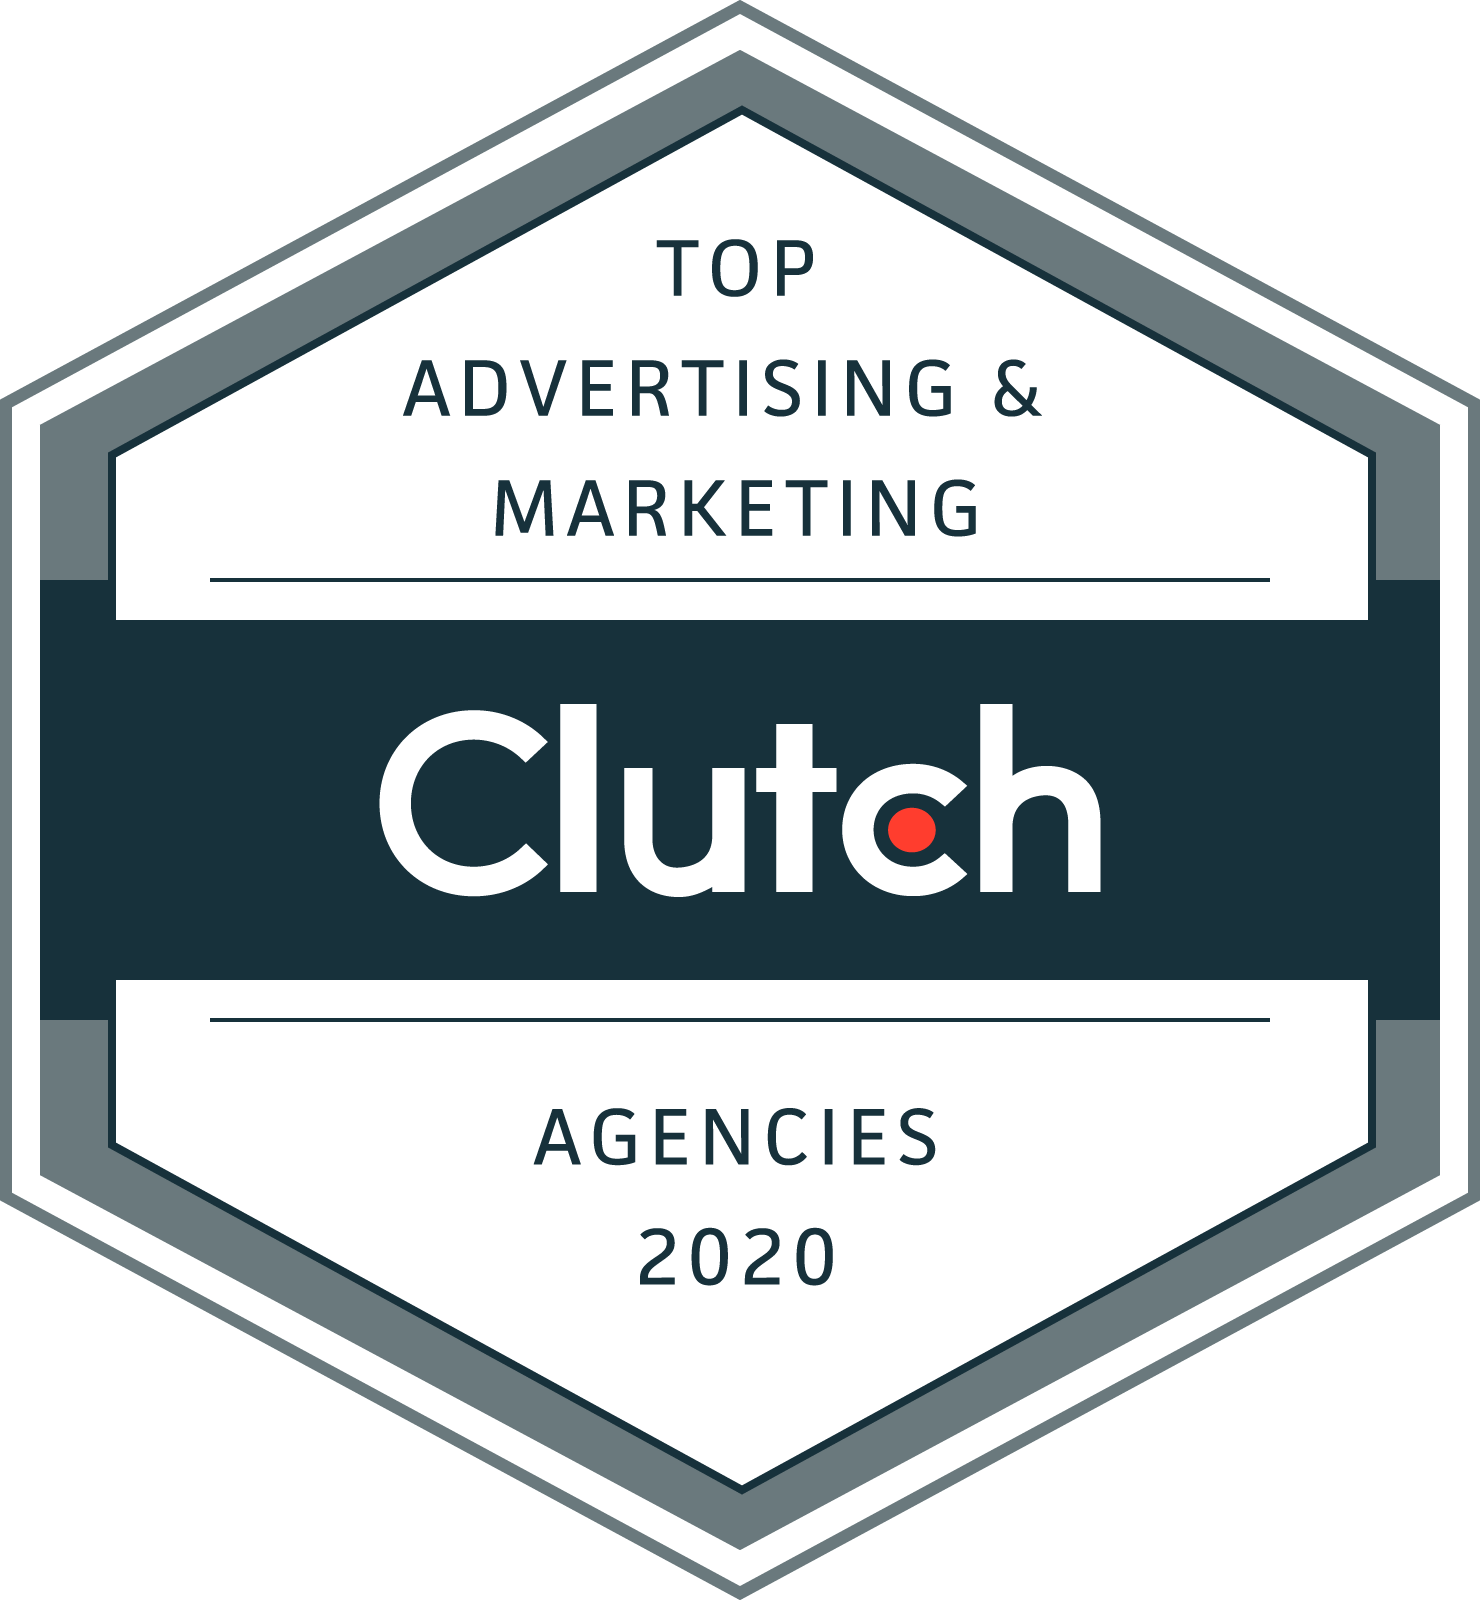 Clutch Top Advertising & Marketing Award Agencies 2020